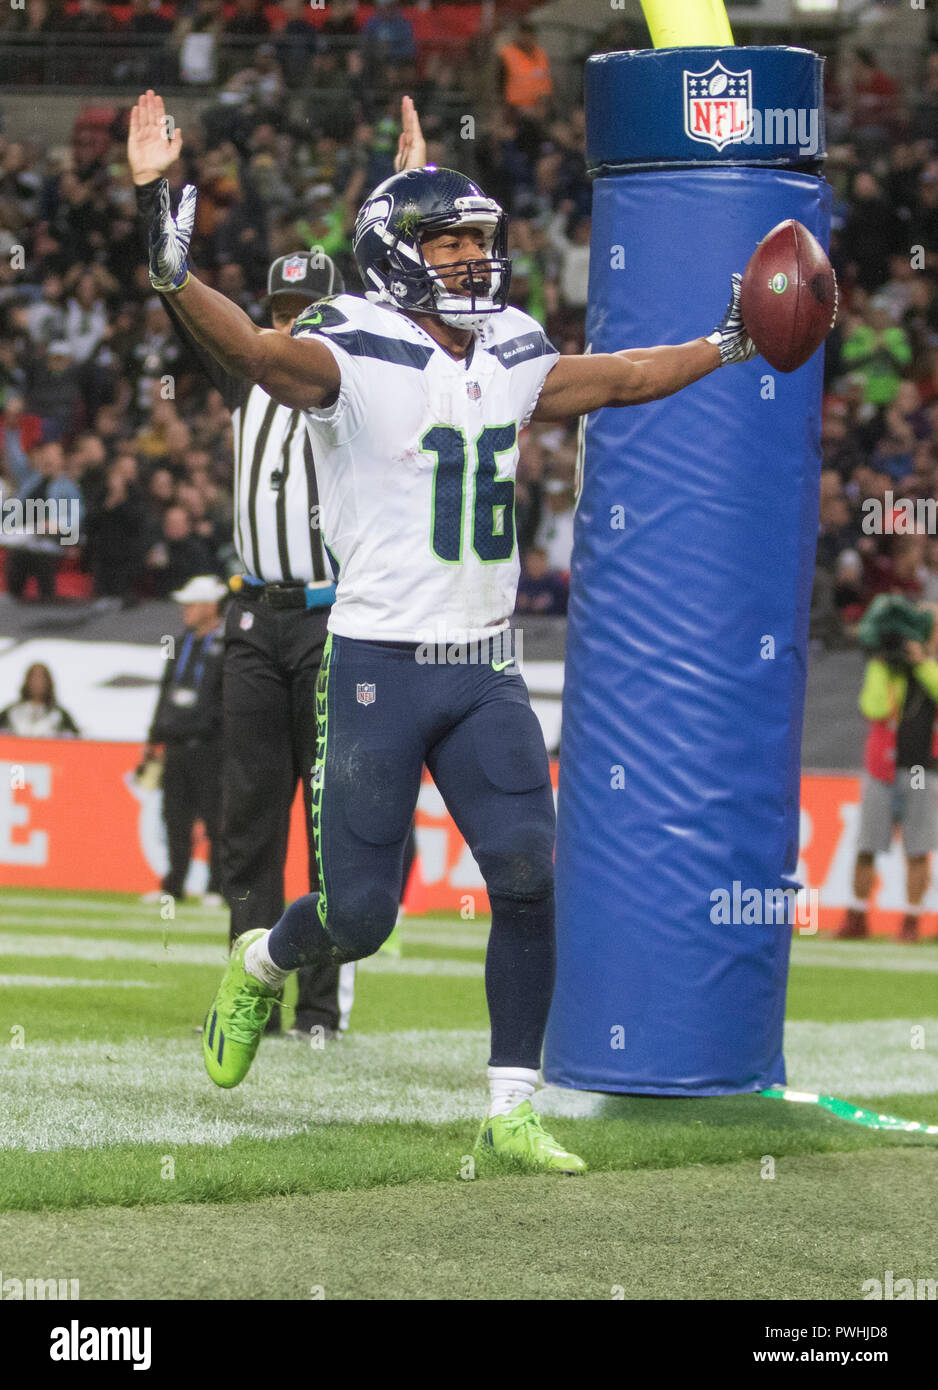 LONDON, ENG - OCTOBER 14: NFL: OCT 14 Seattle Seahawks Wide Receiver Tyler Lockett (16) celebrates touch down during International Series - Seahawks at Raiders(Photo by Glamourstock - Stock Image